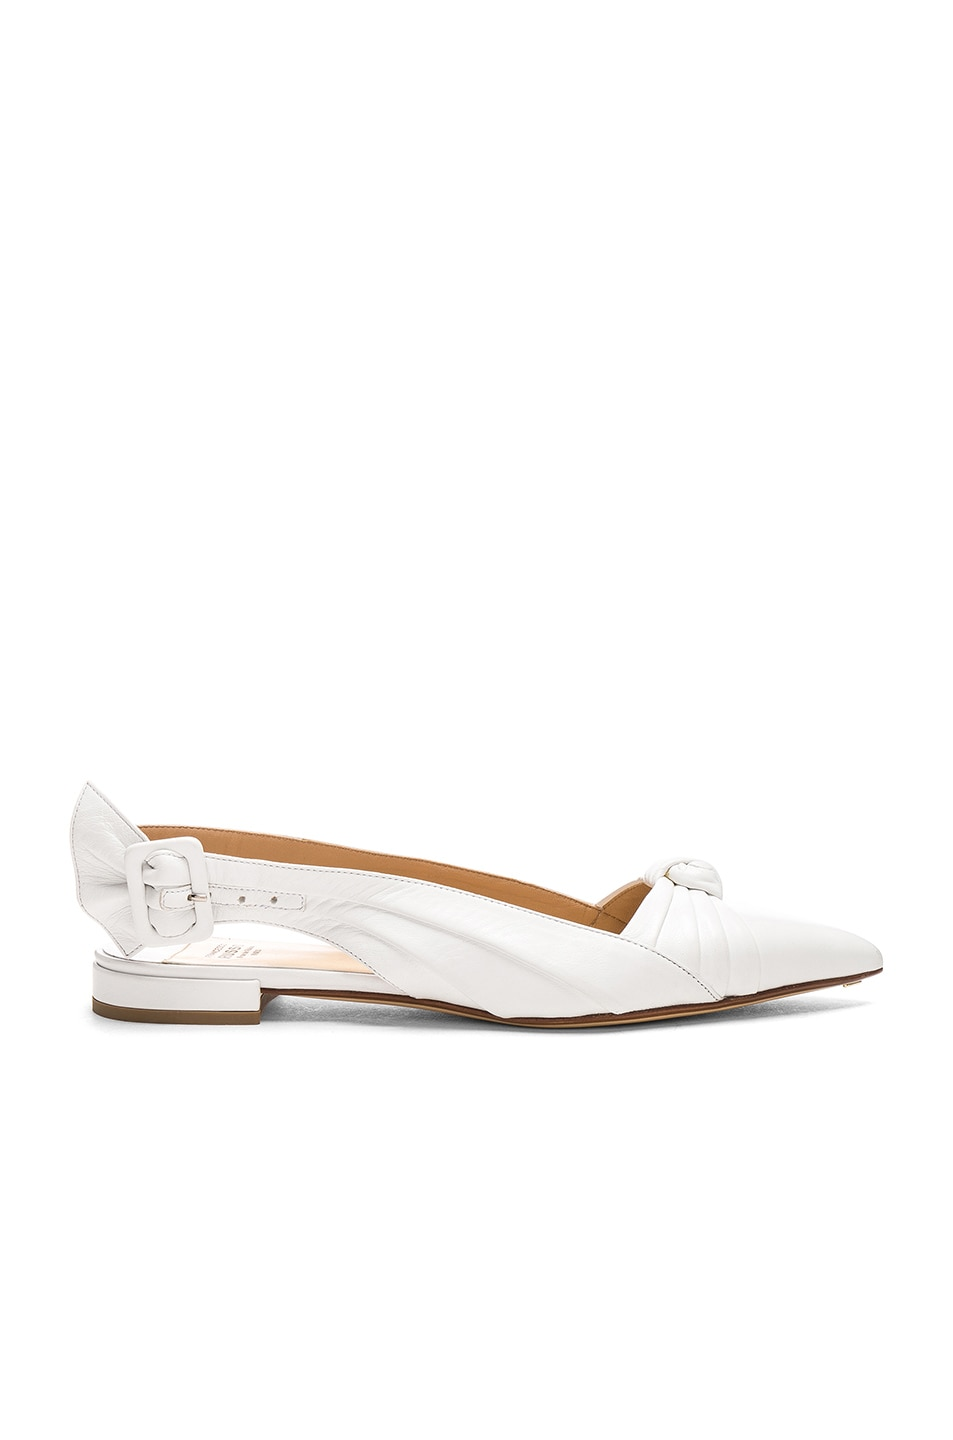 Image 1 of FRANCESCO RUSSO Slingback Flats in White